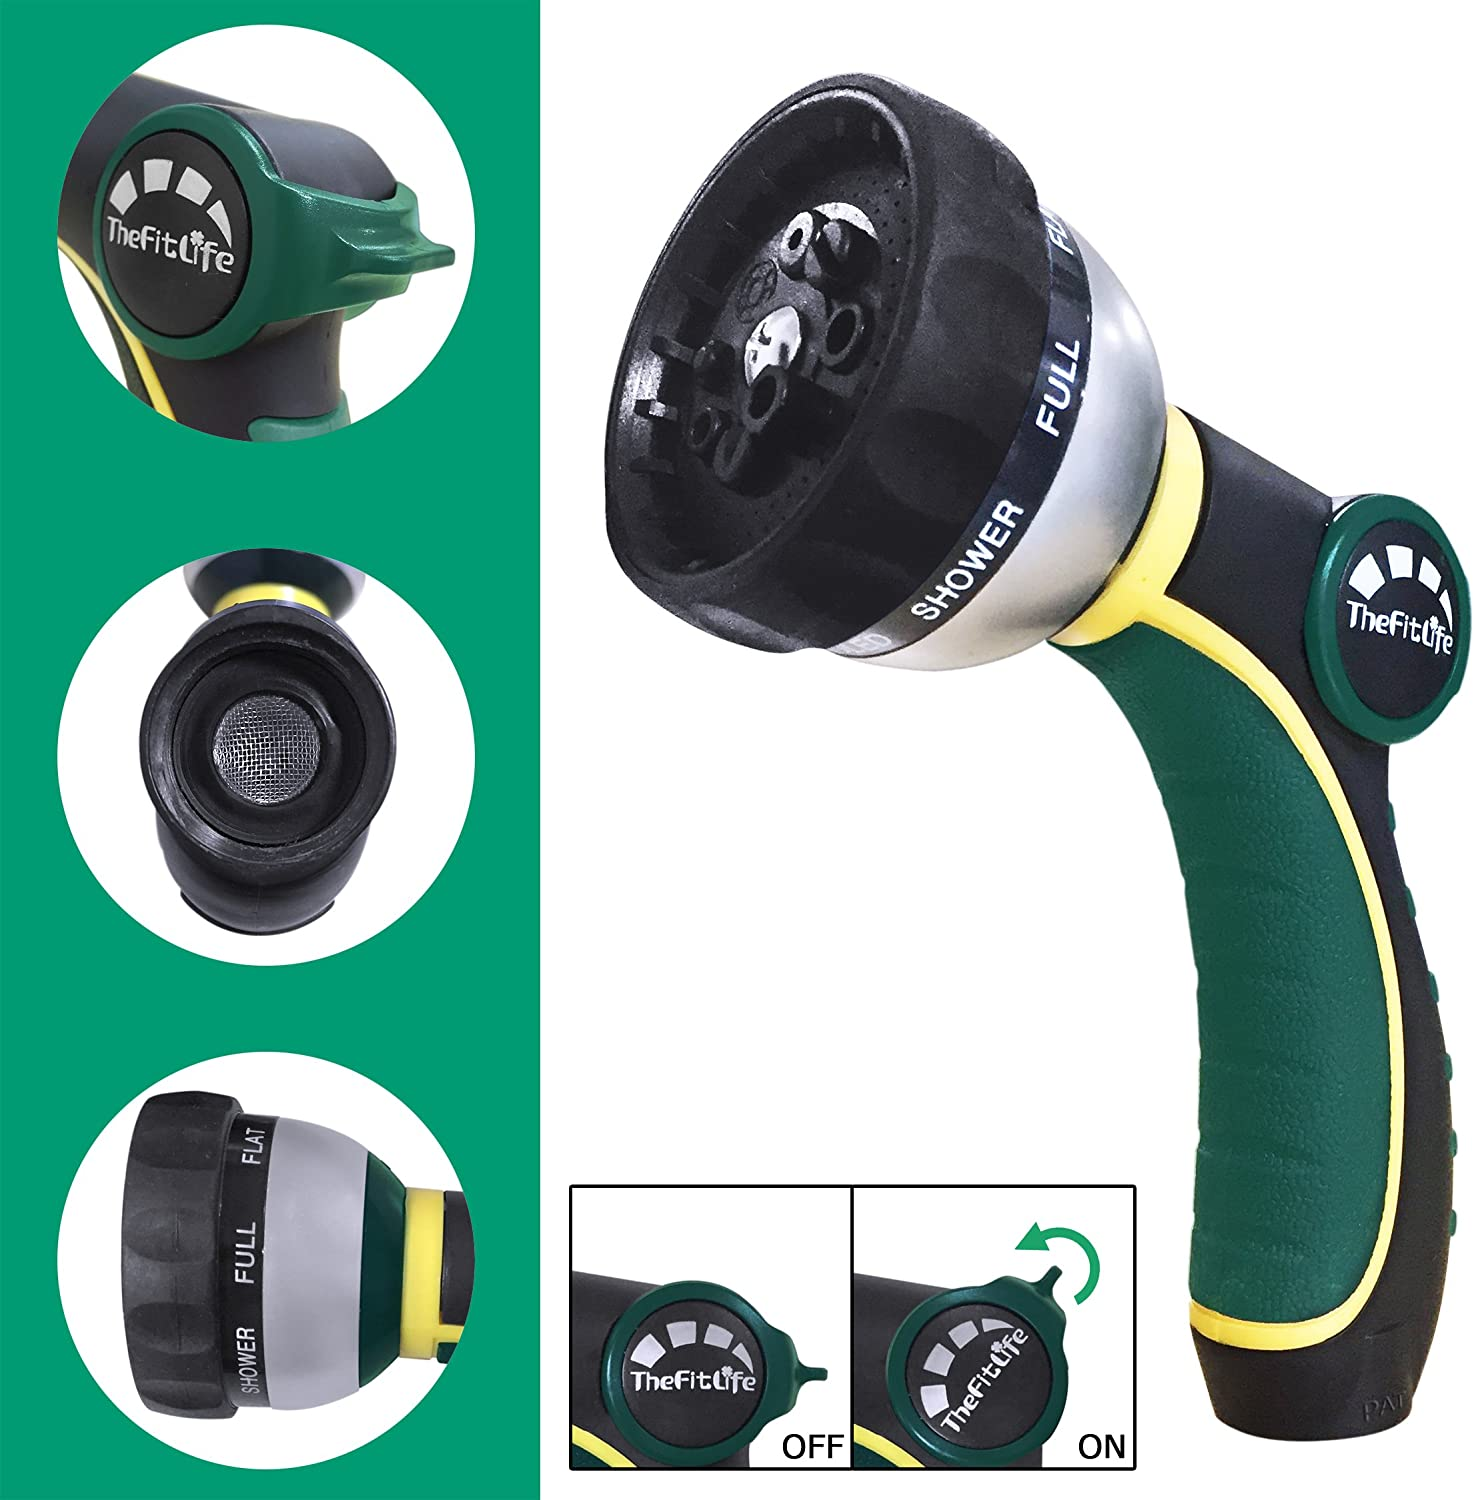 TheFitLife Best Expandable Garden Hose 25//50//75//100 Feet Strongest Triple Core Latex and Solid Brass Fittings Free Spray Nozzle 3//4 USA Standard Easy Storage Kink Free Flexible Water Hose 100 Feet